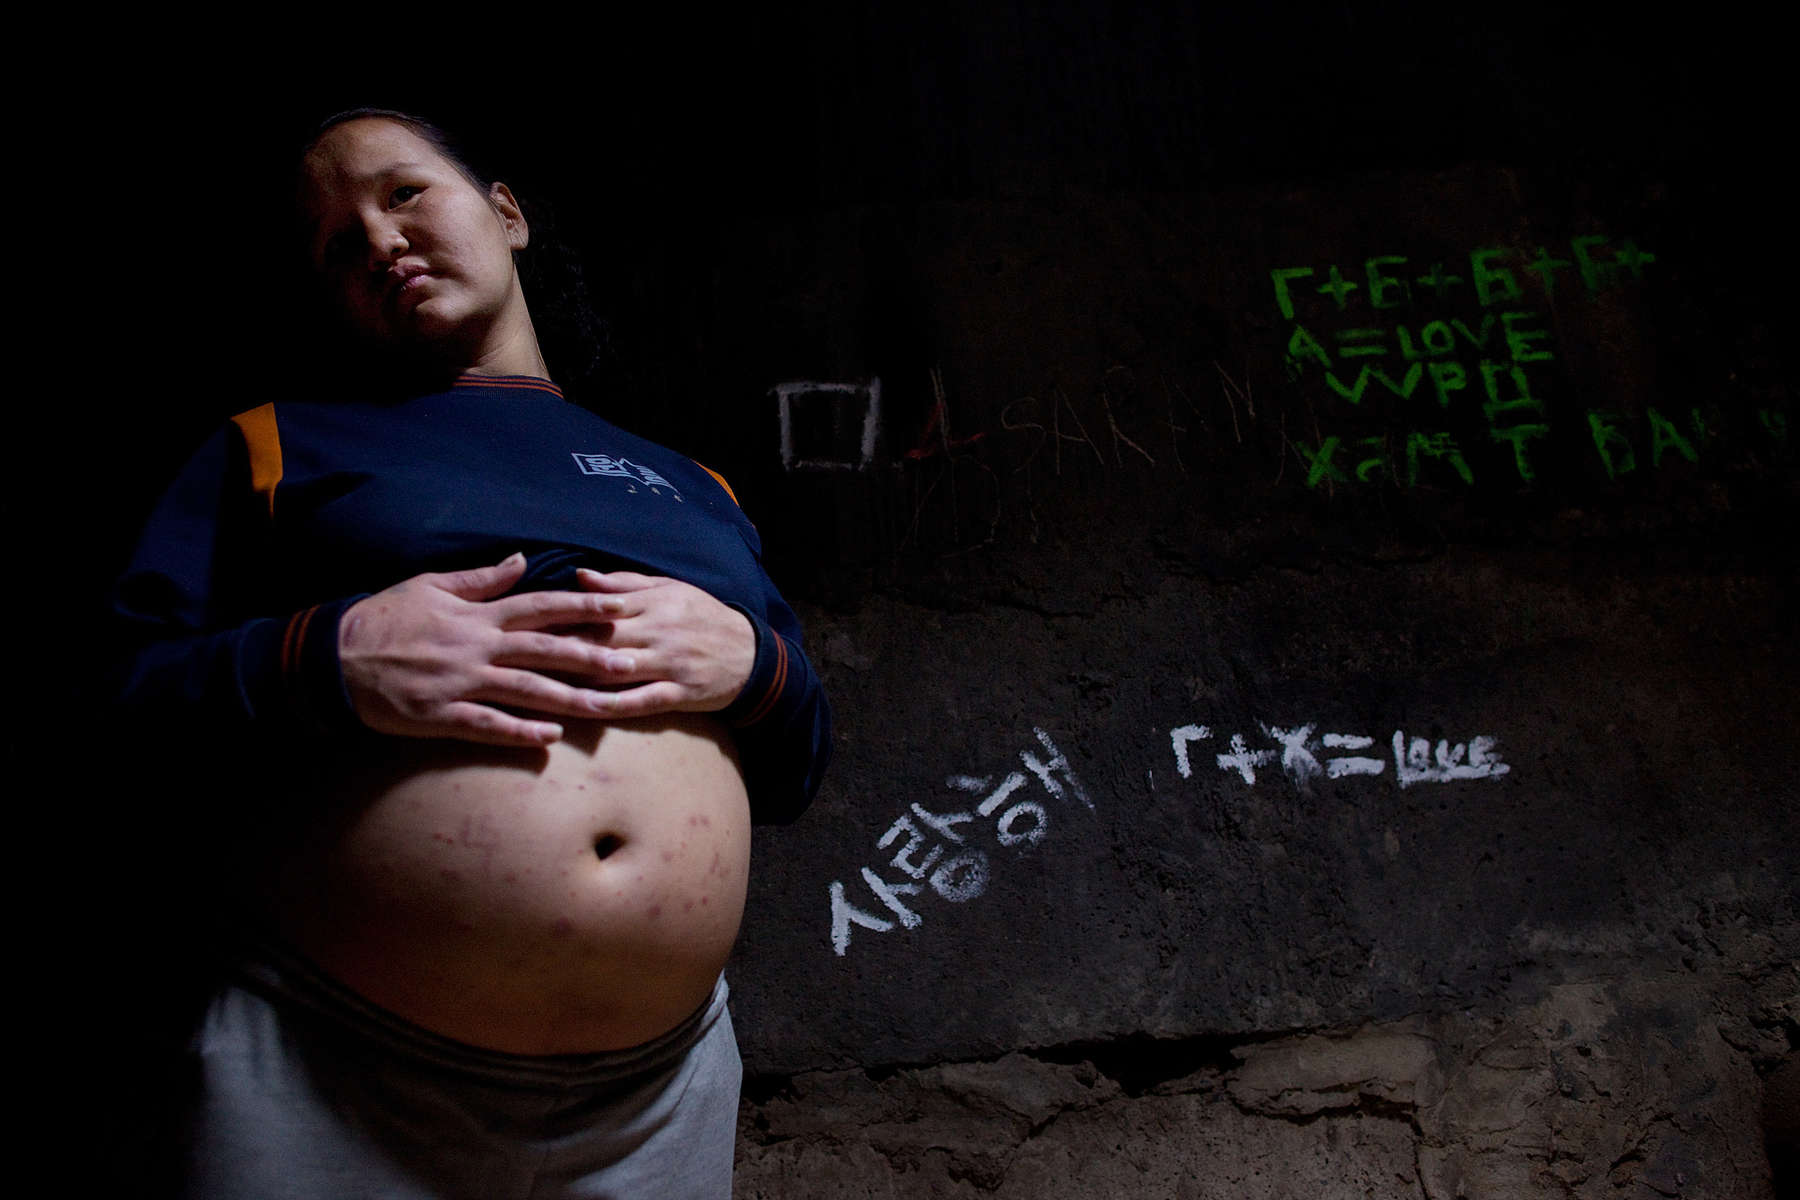 ULAAN BAATAR, MONGOLIA-MARCH 16 :  Zolzaya, 18, is 7 months pregnant, her huge belly is covered with what she says is an allergy,  insect bites from living amongst the bacteria in the sewer  March 16, 2010  in Ulaan Baatar, Mongolia. Since 70 years of communist rule ended in 1990, Mongolia has become one of the most pro-business countries. While economic reforms have brought prosperity to Ulaan Baatar, there still widespread unemployment, some used to work in the now defunct state industries. Approximately over 35% of Mongolians live below the poverty line, many unable to buy basic food needed to survive. Social problems include depression, alcohol abuse, domestic violence and crime. Mongolia suffers with a very high number of alcoholics, all consuming cheap Mongolian vodka that is readily available to the poor and the unemployed, Many Mongolians have immigrated to the capitol city from the far away provinces seeking employment.  For the homeless during the winter this means extreme hardship, for some homeless living in the sewers means warmth verses dealing with temperatures dropping as low as -25C mid- Winter. This year Mongolia has experienced the worst winter in 30 years. (Photo by Paula Bronstein /Getty Images)